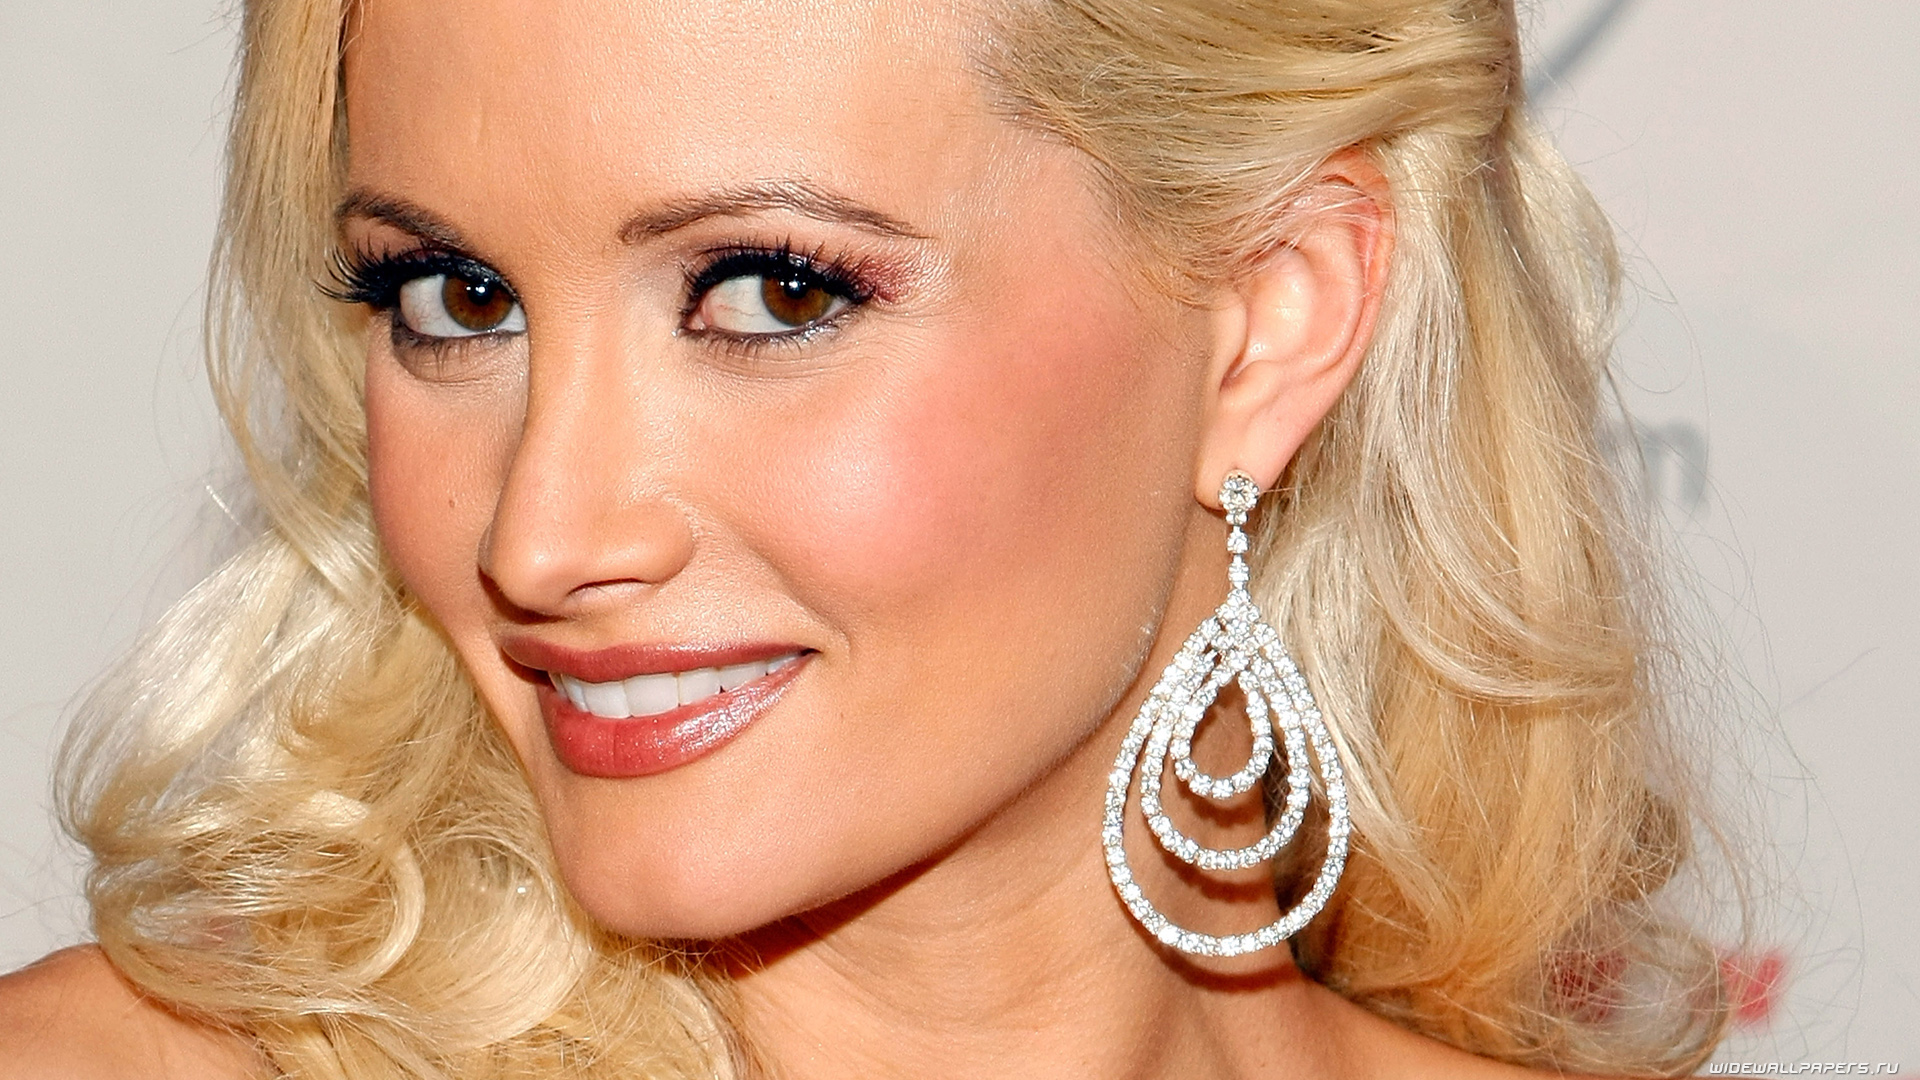 holly madison hd desktop views images photos download